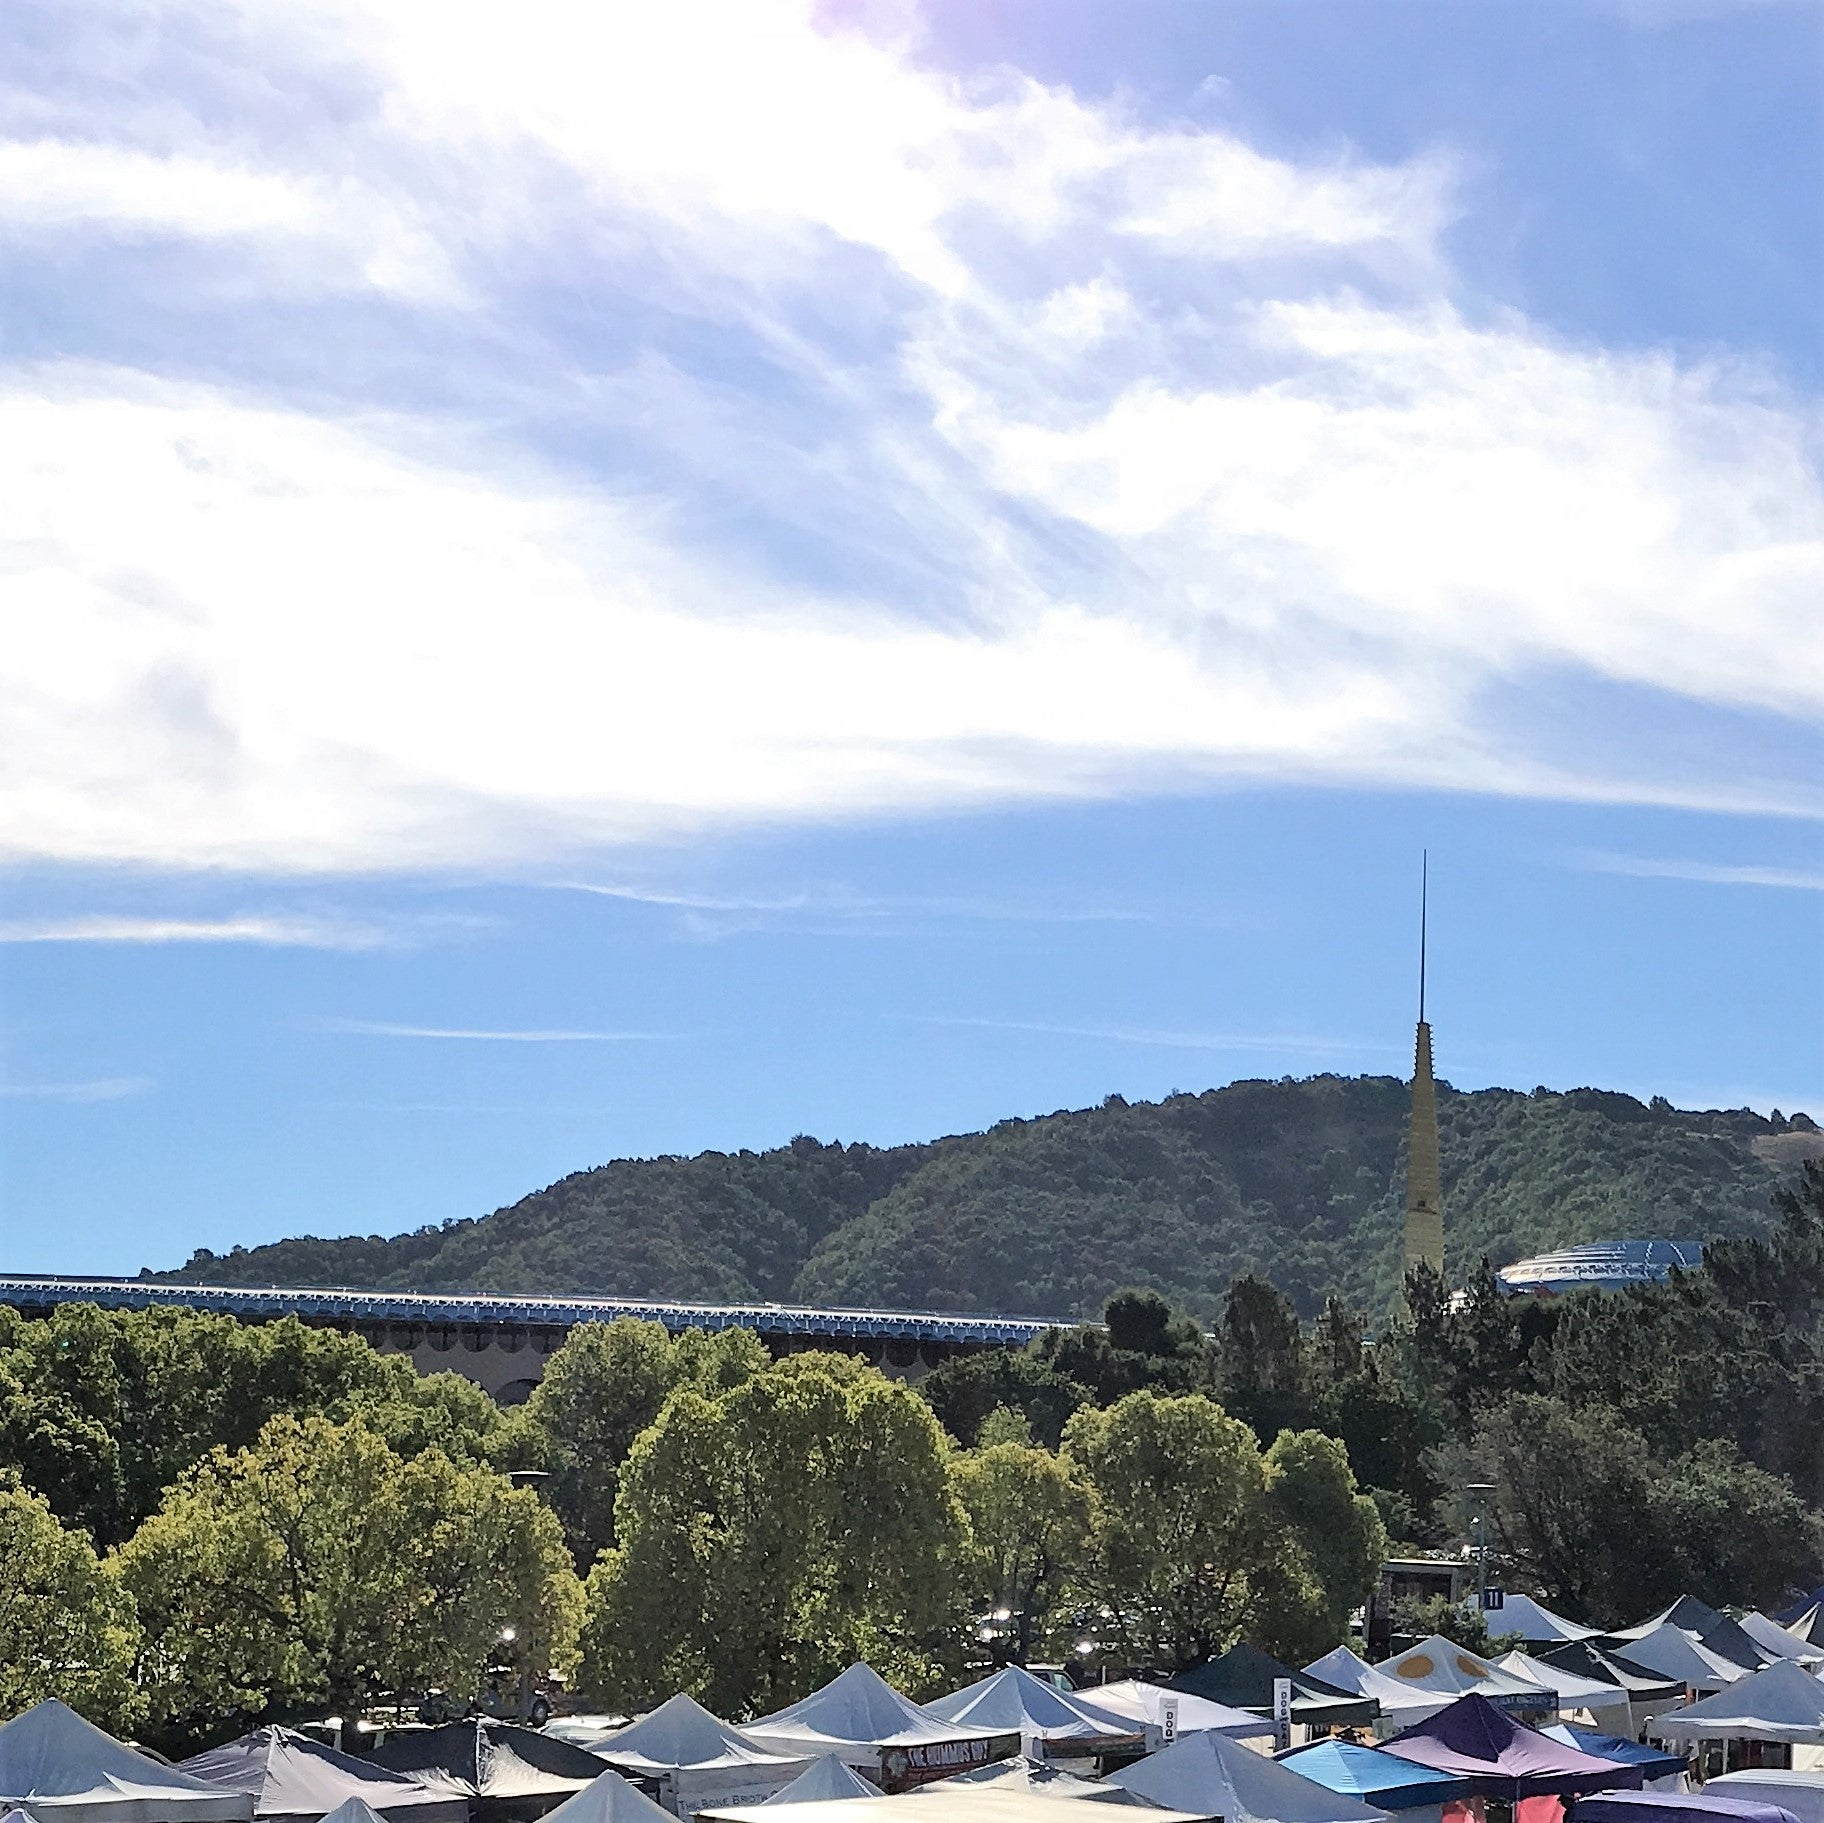 San Rafael Civic Center Spire and Hills under a Blue sky with whispy clouds and mostly white Market tent tops in the foreground